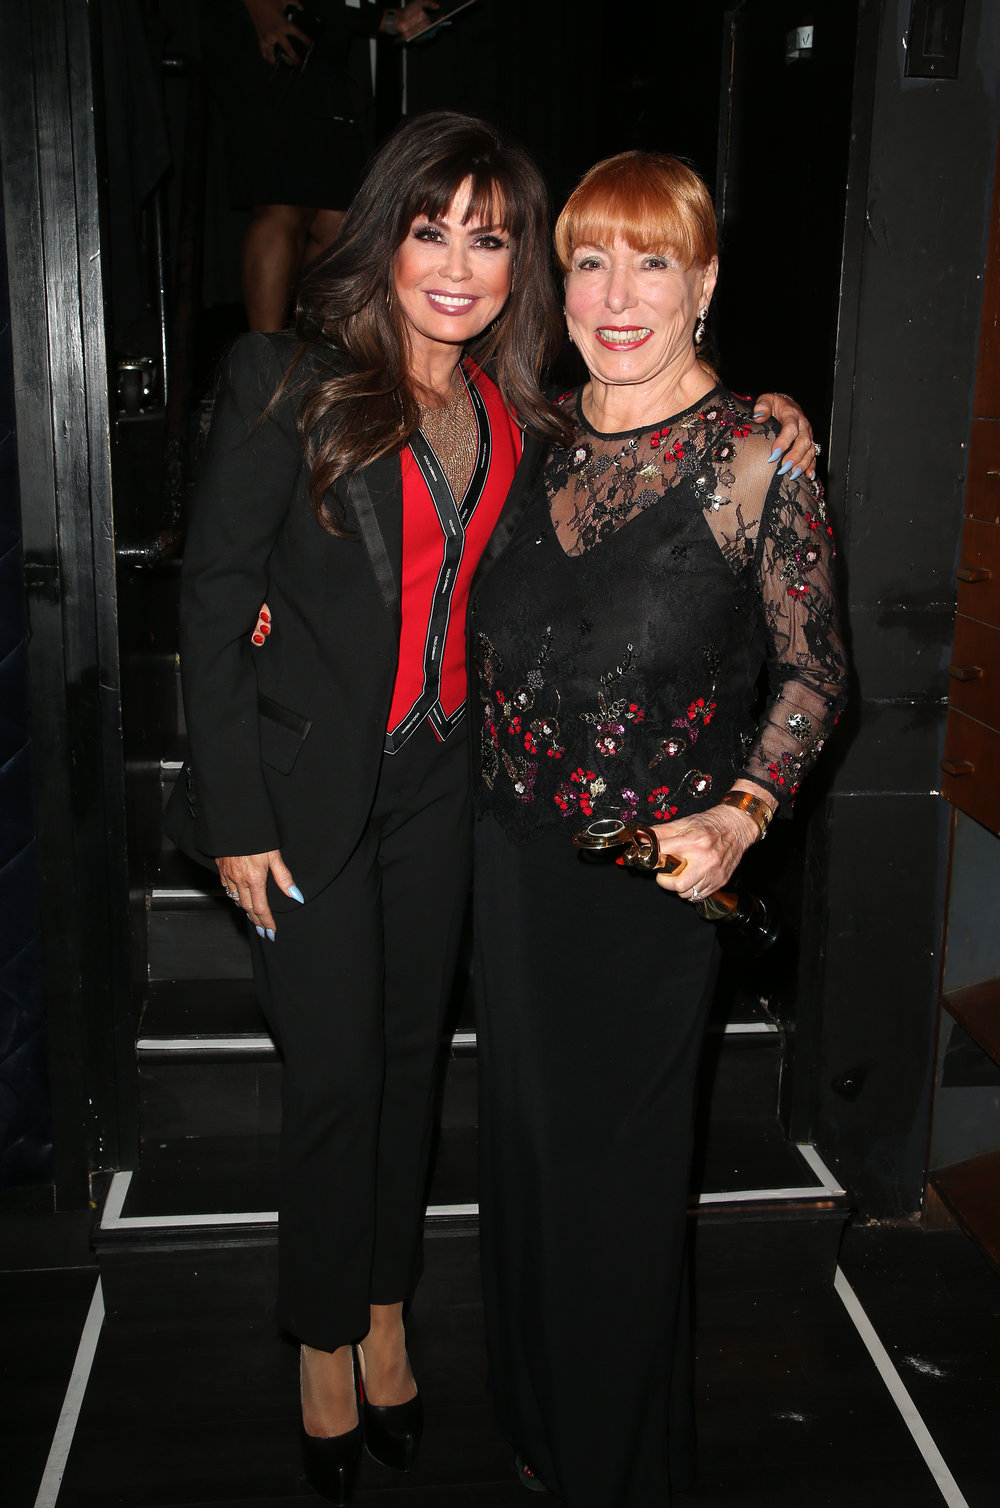 Marie Osmond and Gail Ryan  | Feb 25, 2018, Hollywood Beauty Awards held at the Avalon